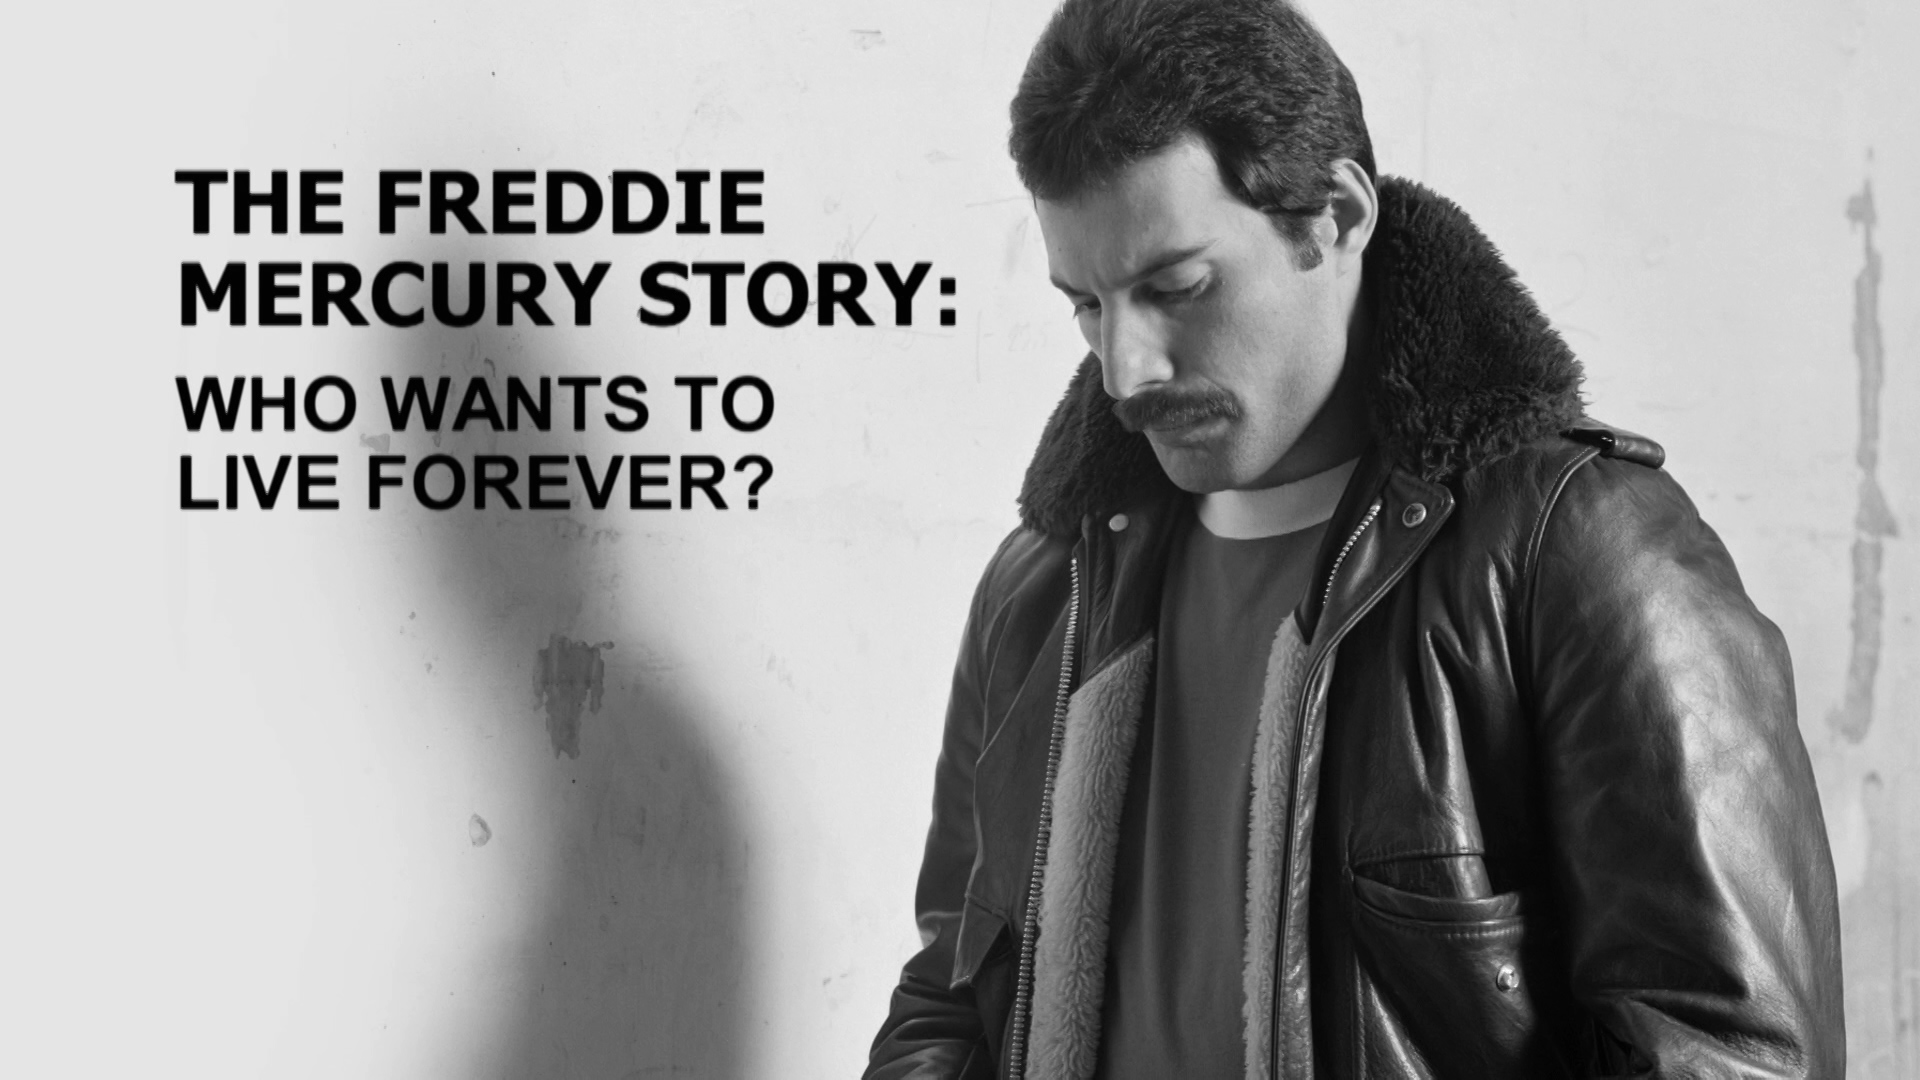 The Freddie Mercury Story: Who Wants to Live Forever - title card for programme